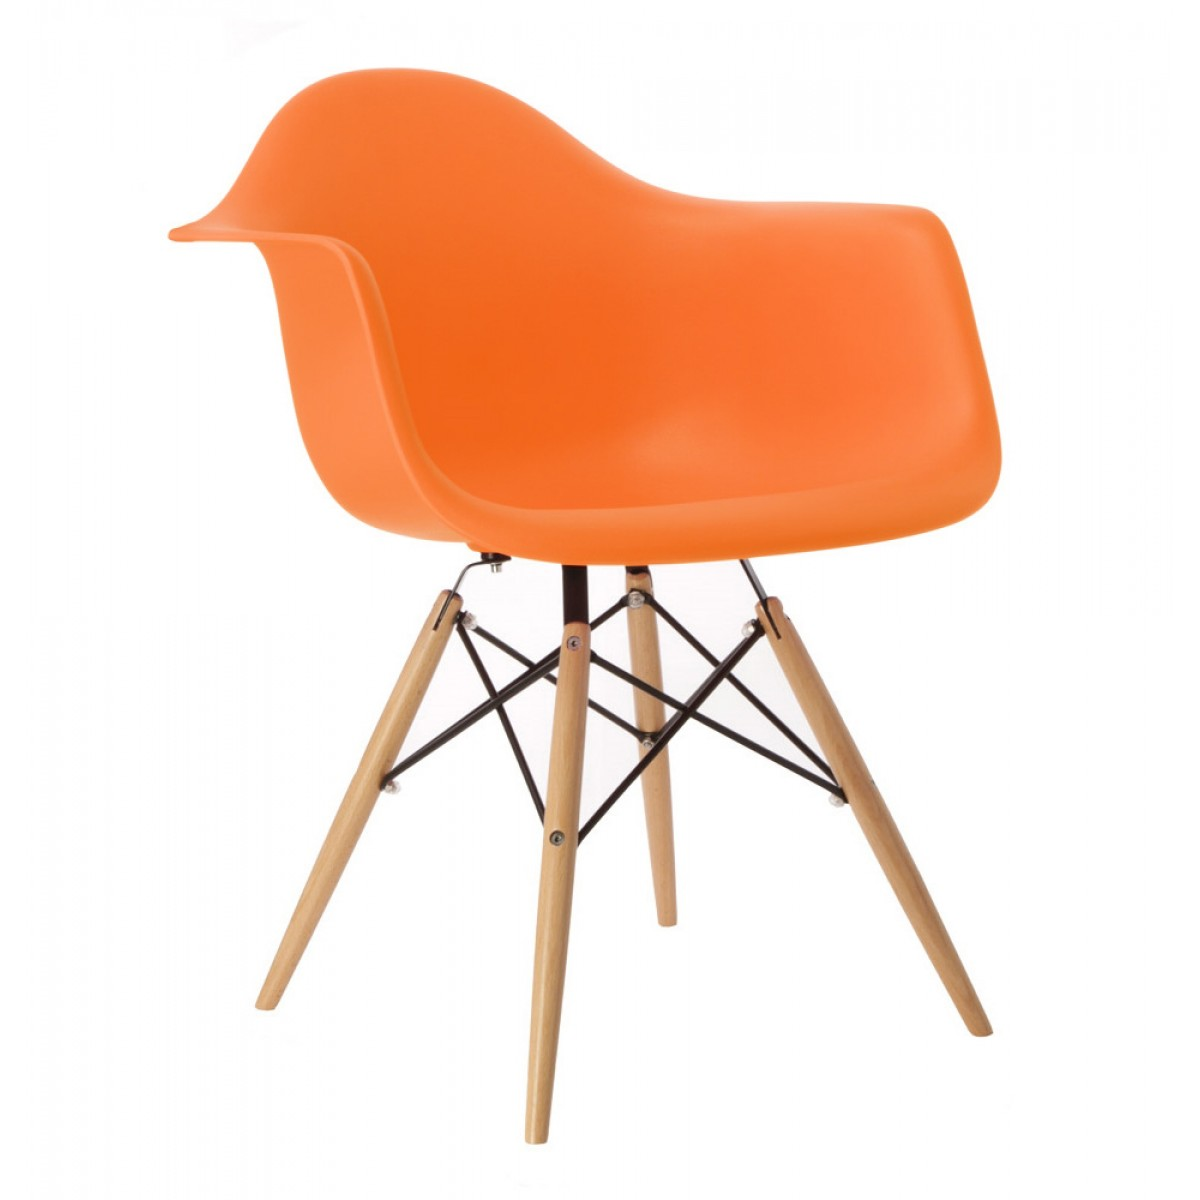 DAW Molded Orange Plastic Dining Armchair With Wood Eiffel Legs